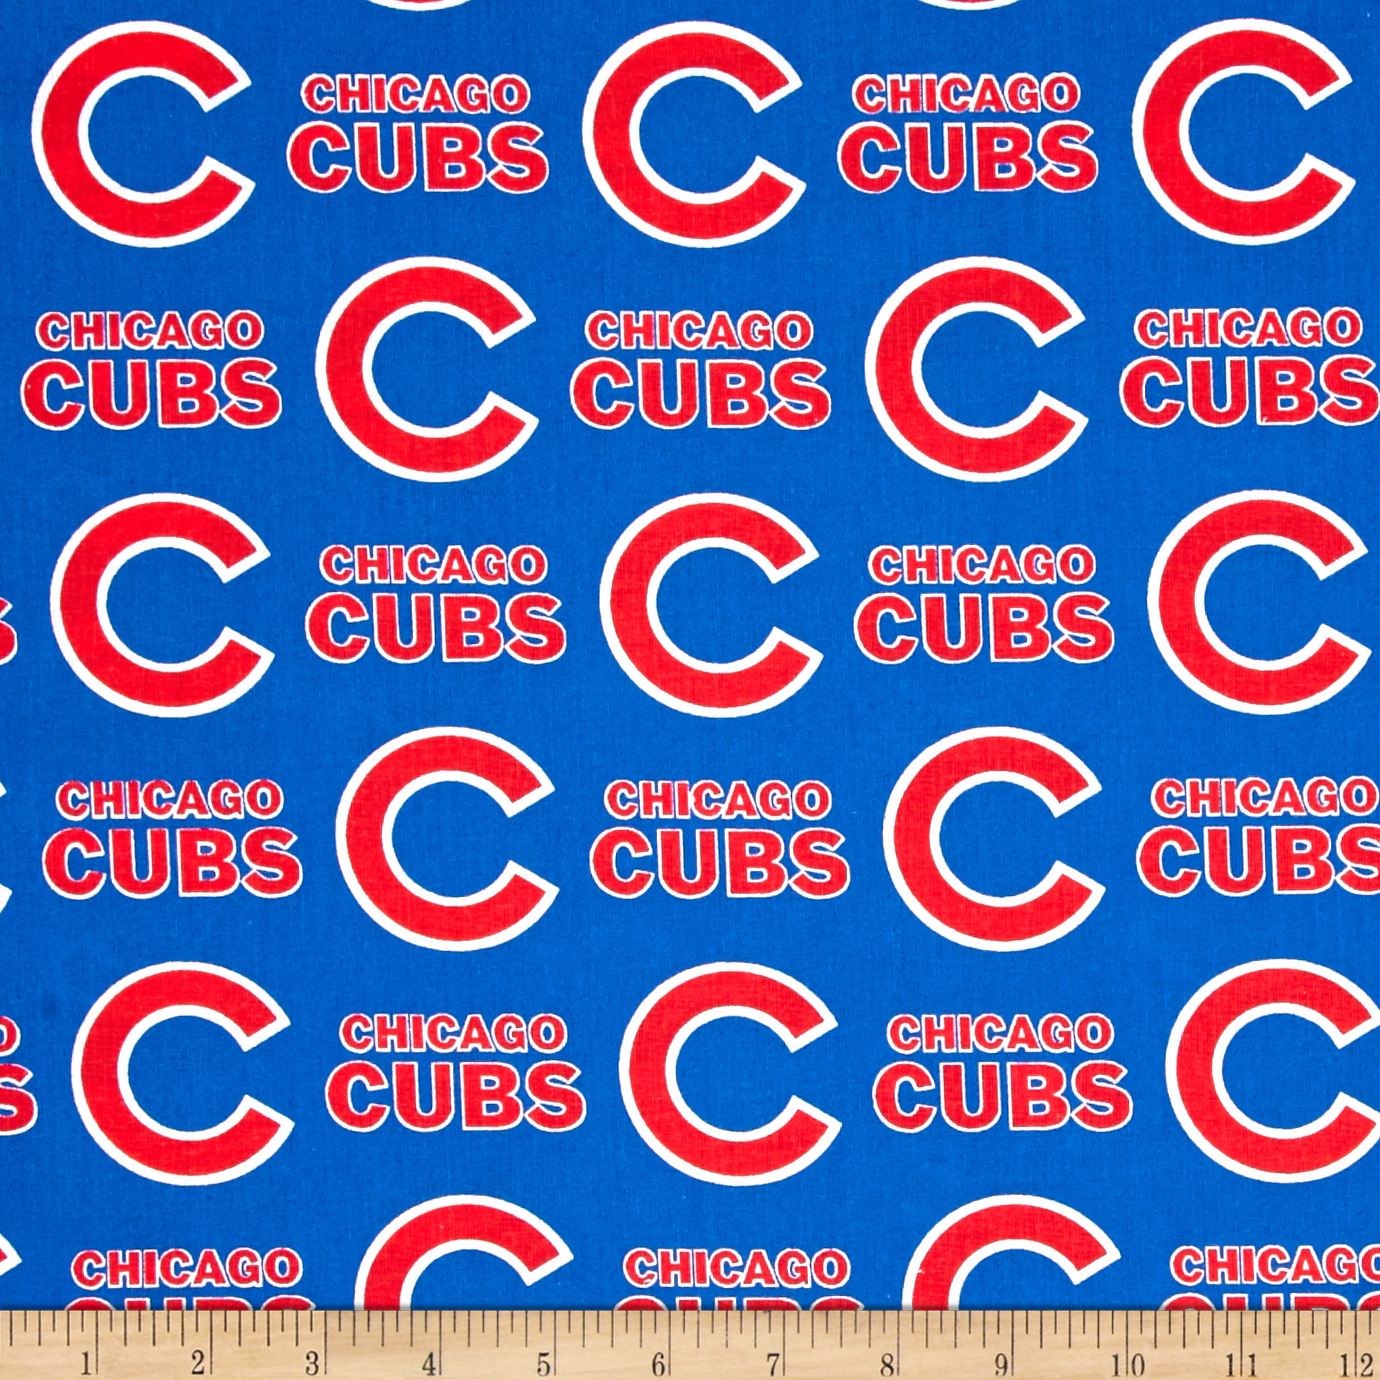 MLB Cotton Broadcloth Chicago Cubs Blue/Red Fabric by Fabric Traditions in USA